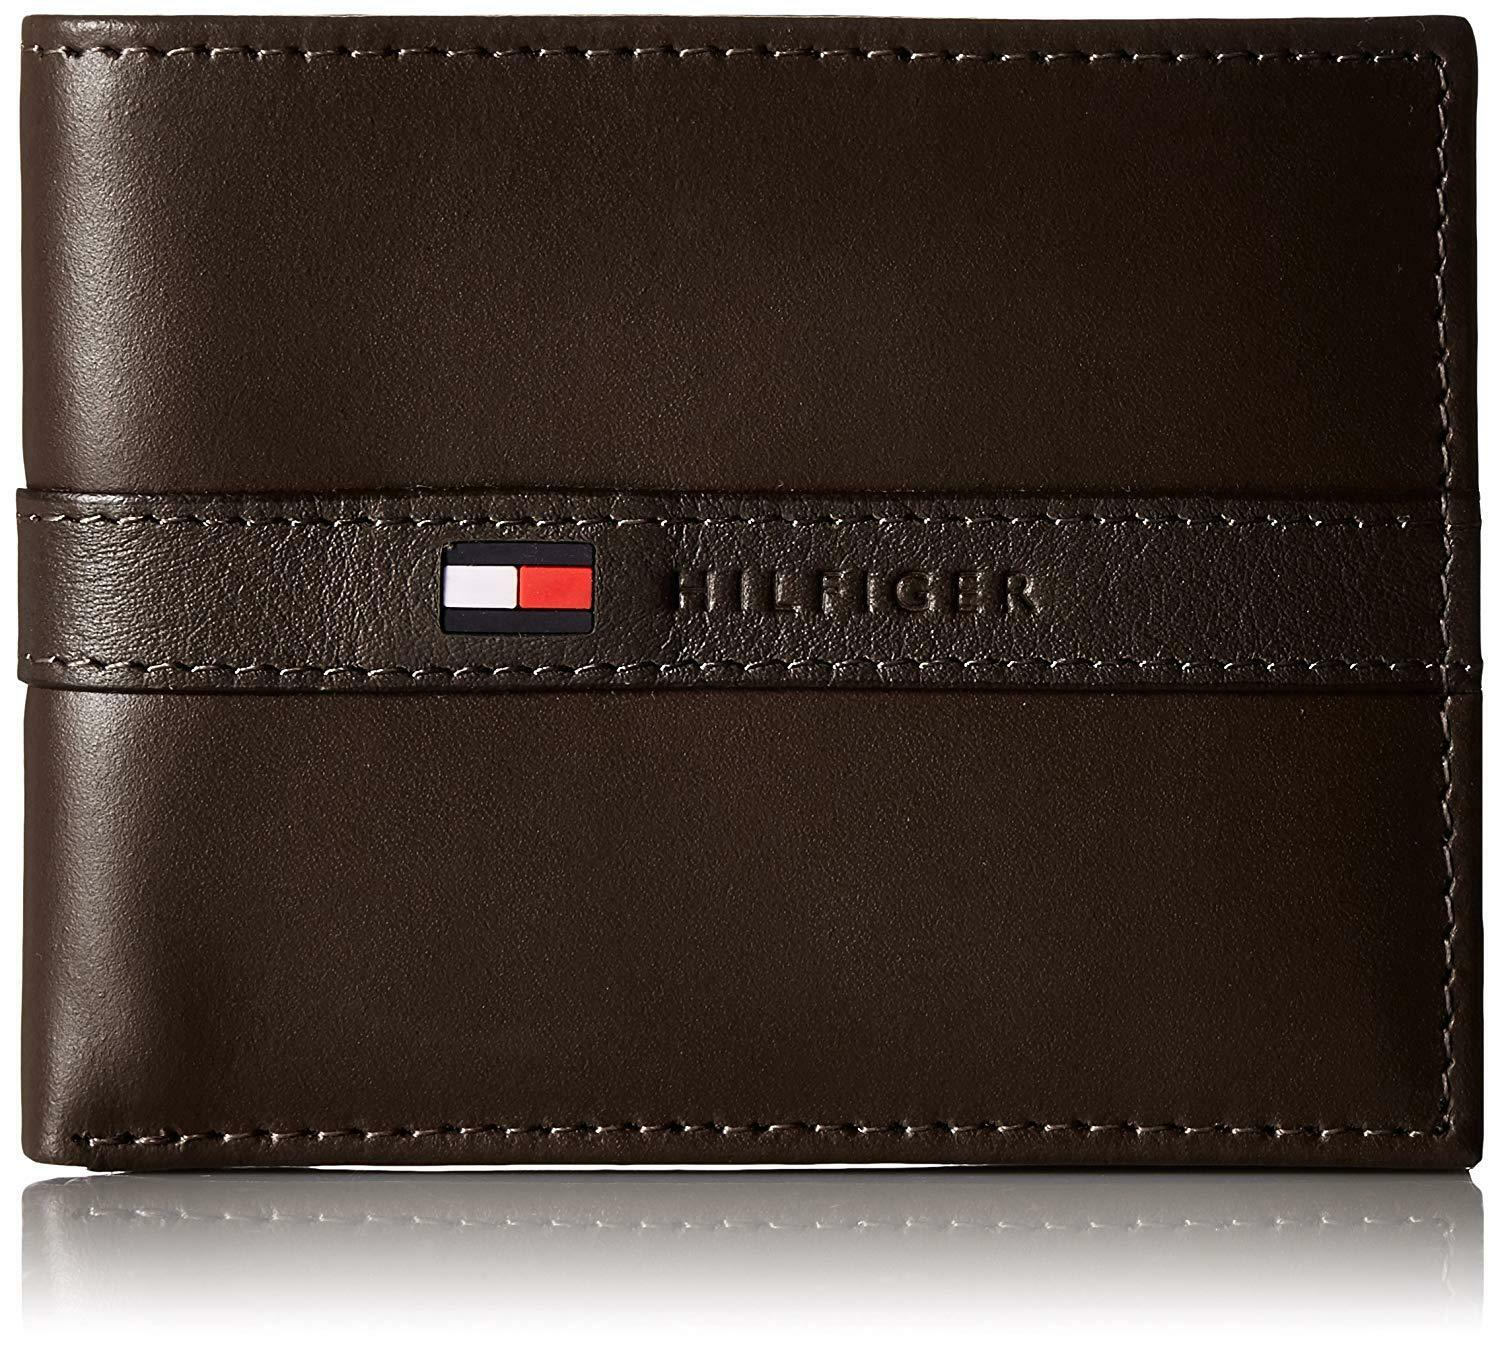 Buy New Tommy Hilfiger Men's Ranger Leather Passcase Bifold Wallet Brown Online at Low Prices in India - Paytmmall.com